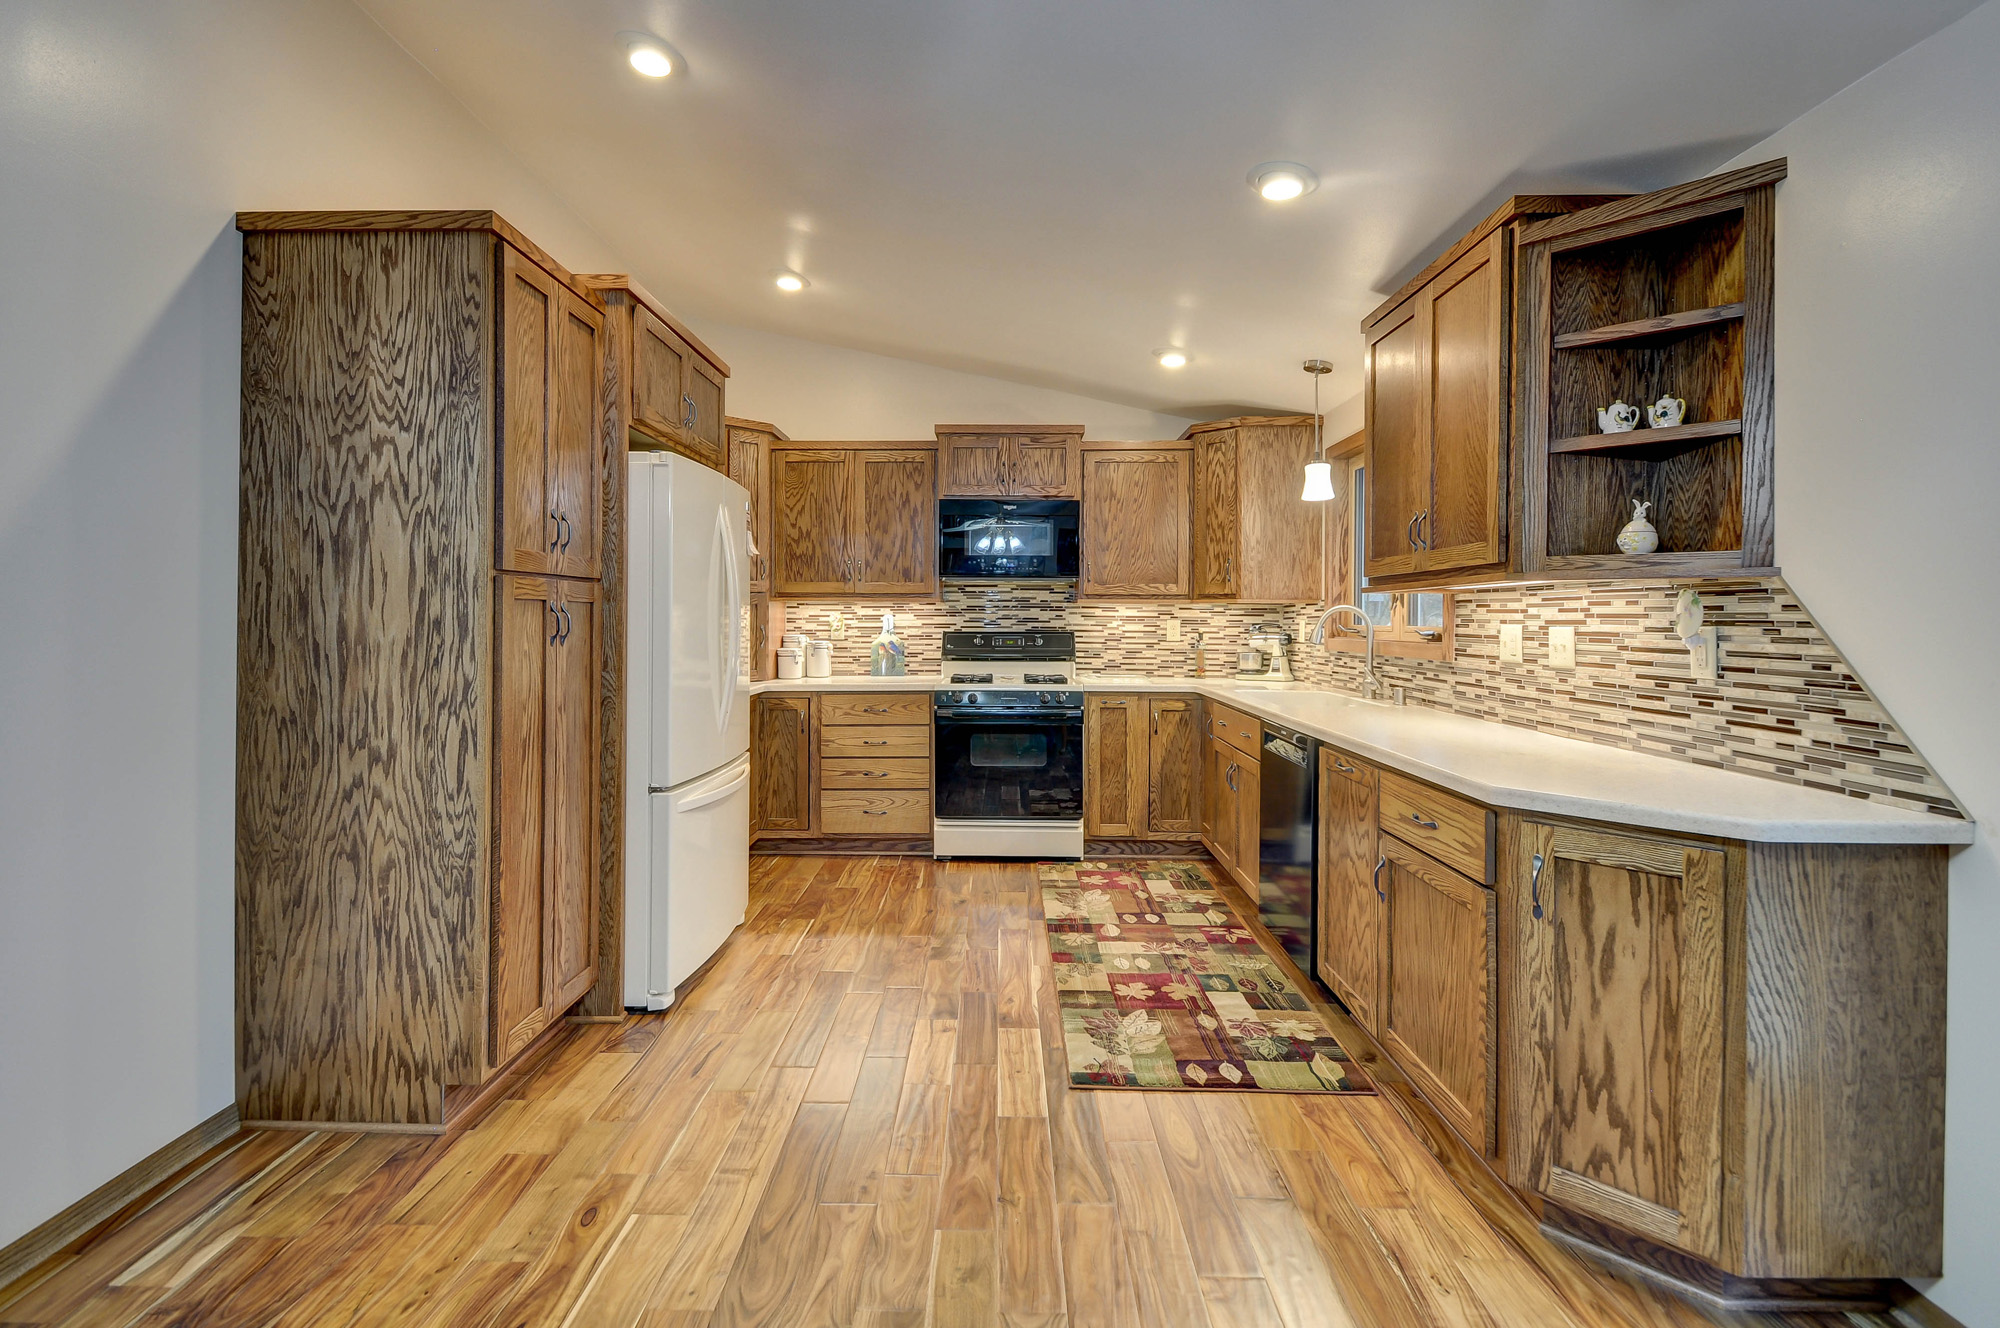 kitchen remodel burlington, wisconsin | elite improvements